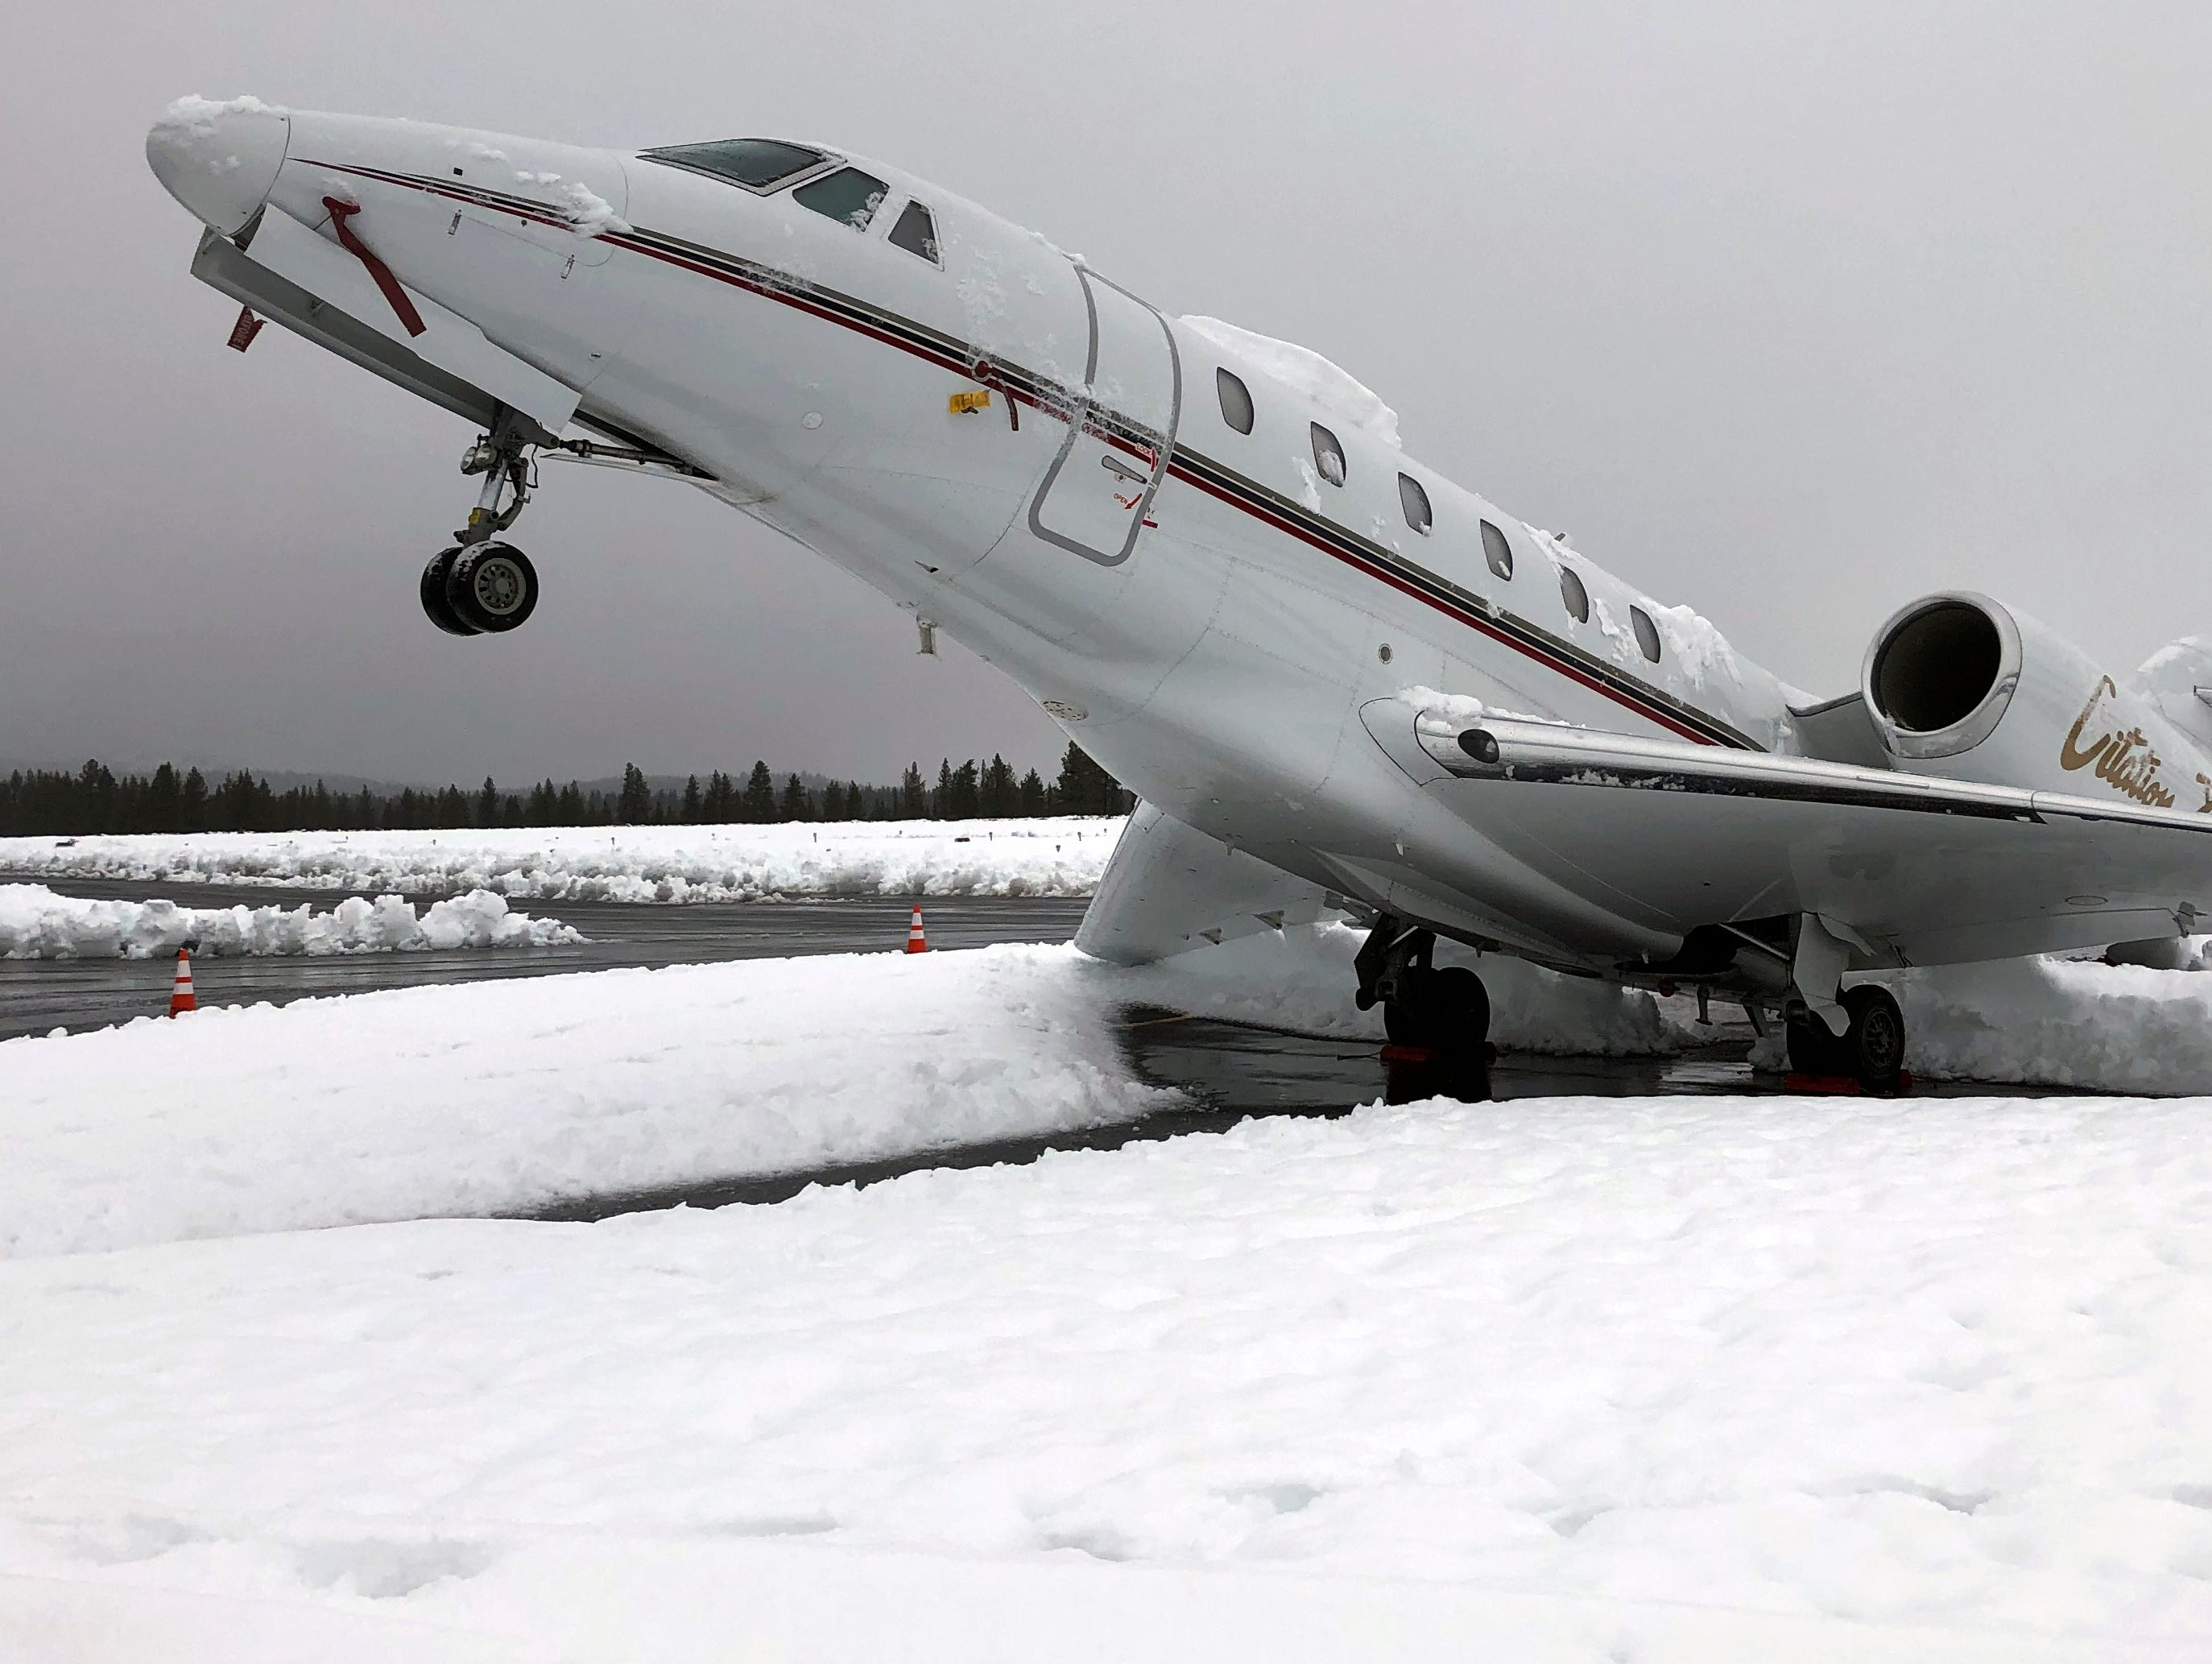 "This Wed. Jan. 16, 2019 photo shows an overnight accumulation of about 20 inches of heavy wet snow dubbed ""Sierra cement"" causing a Cessna Citation X business jet at an outdoor parking spot to do a tail stand at Truckee Tahoe Airport in Truckee, Calif. Airport official Marc Lamb photographed the aircraft before mechanics cleared the snow. No injuries were reported."